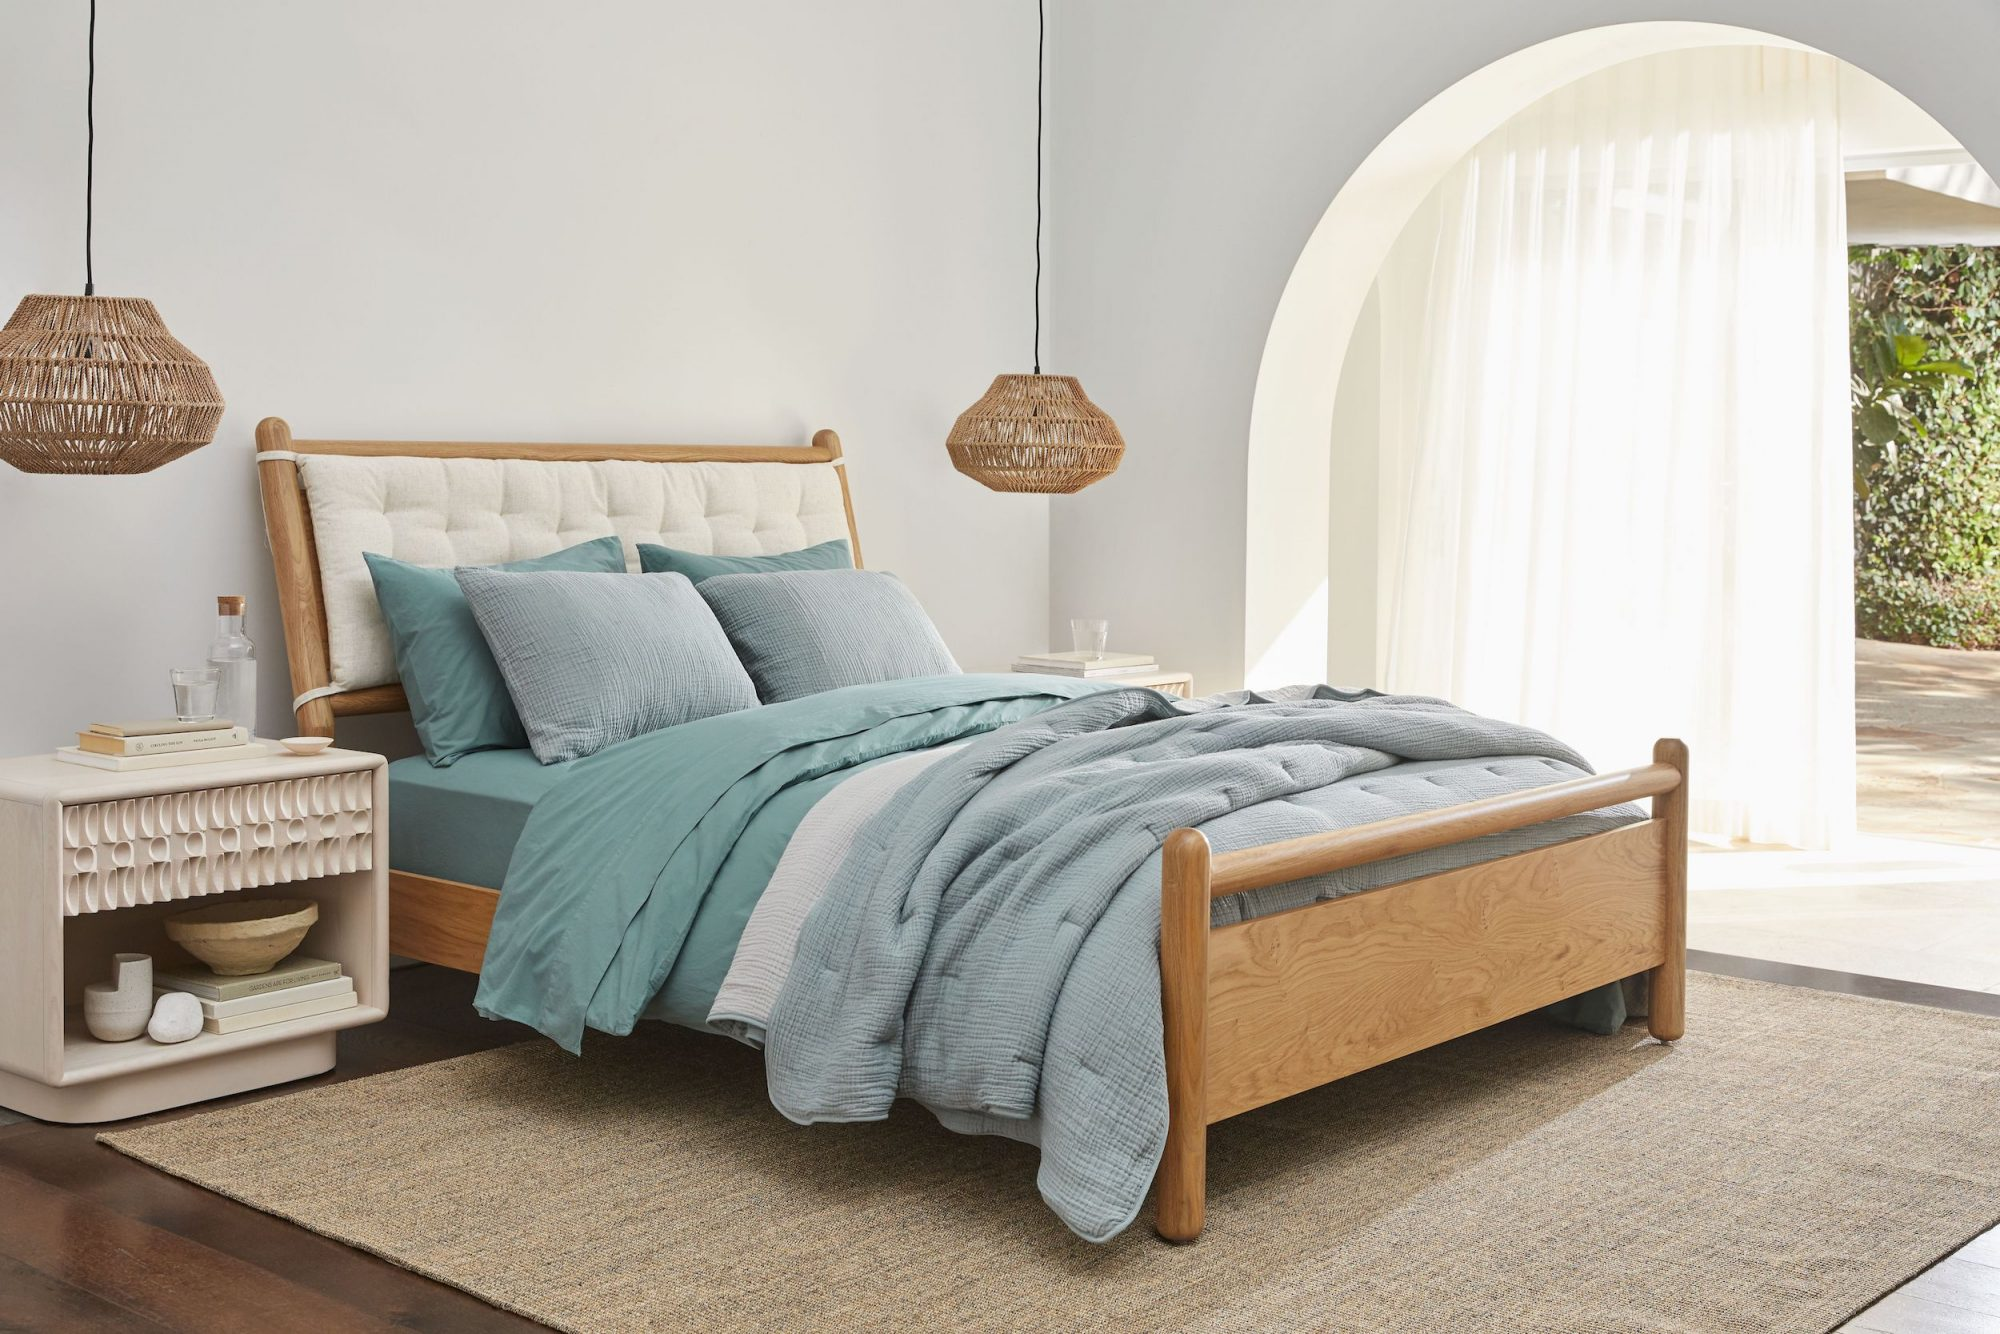 Parachute Crate and Barrel Bedding Collab, soothing blue bedding